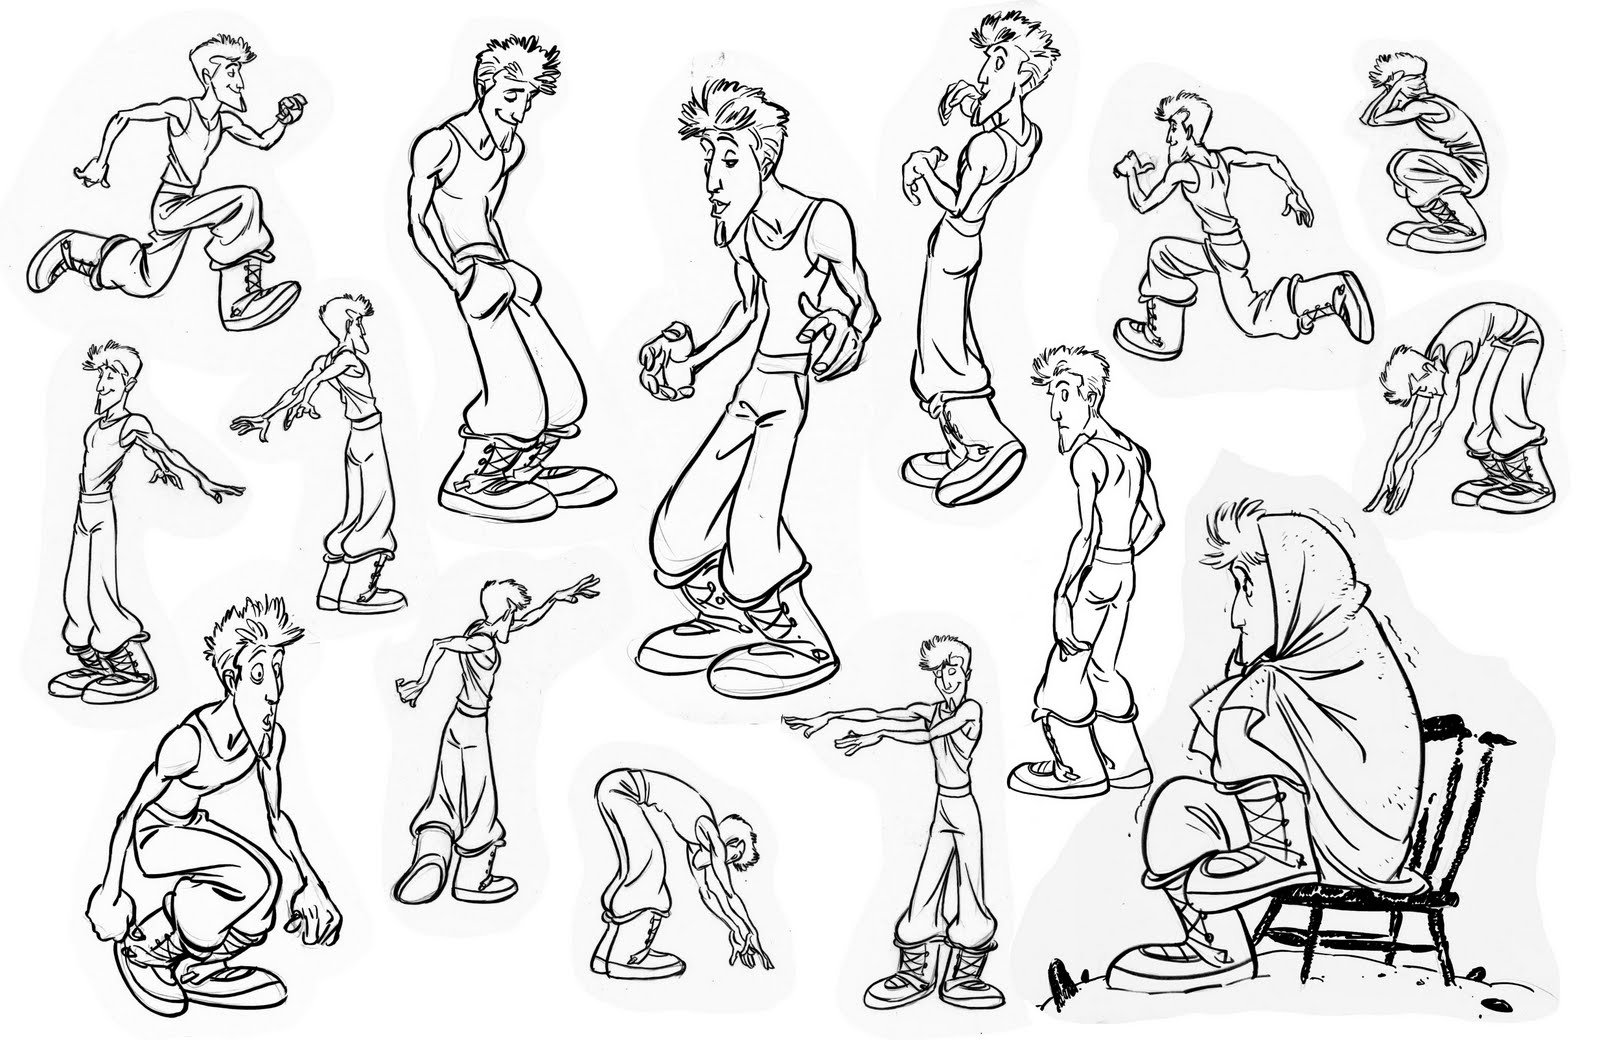 the best free male drawing images download from 50 free drawings of